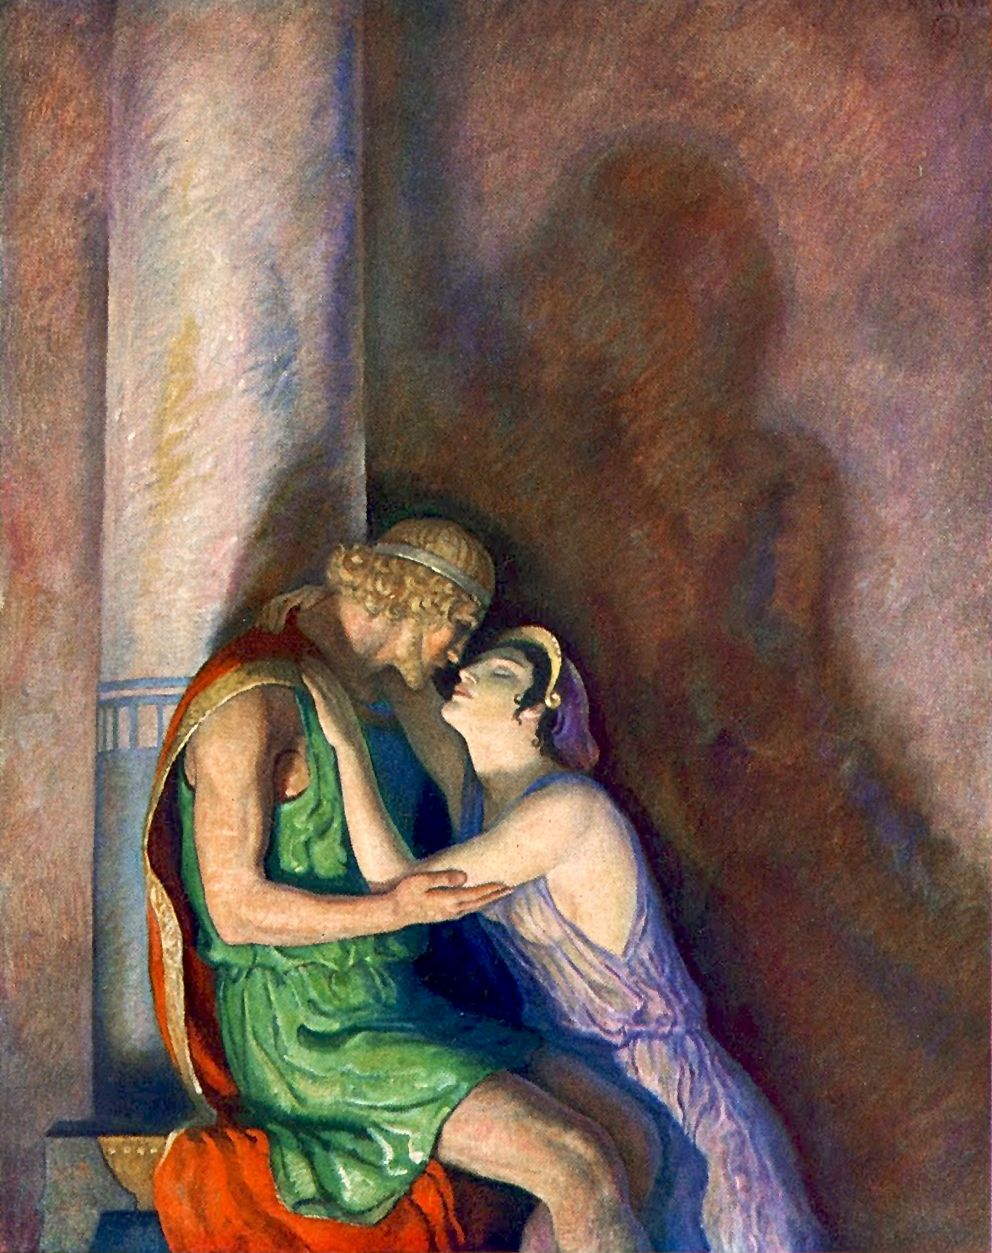 """Odysseus and Penelope reunited. Illustration by N. C. Wyeth from """"The Odyssey of Homer"""" (1929)"""